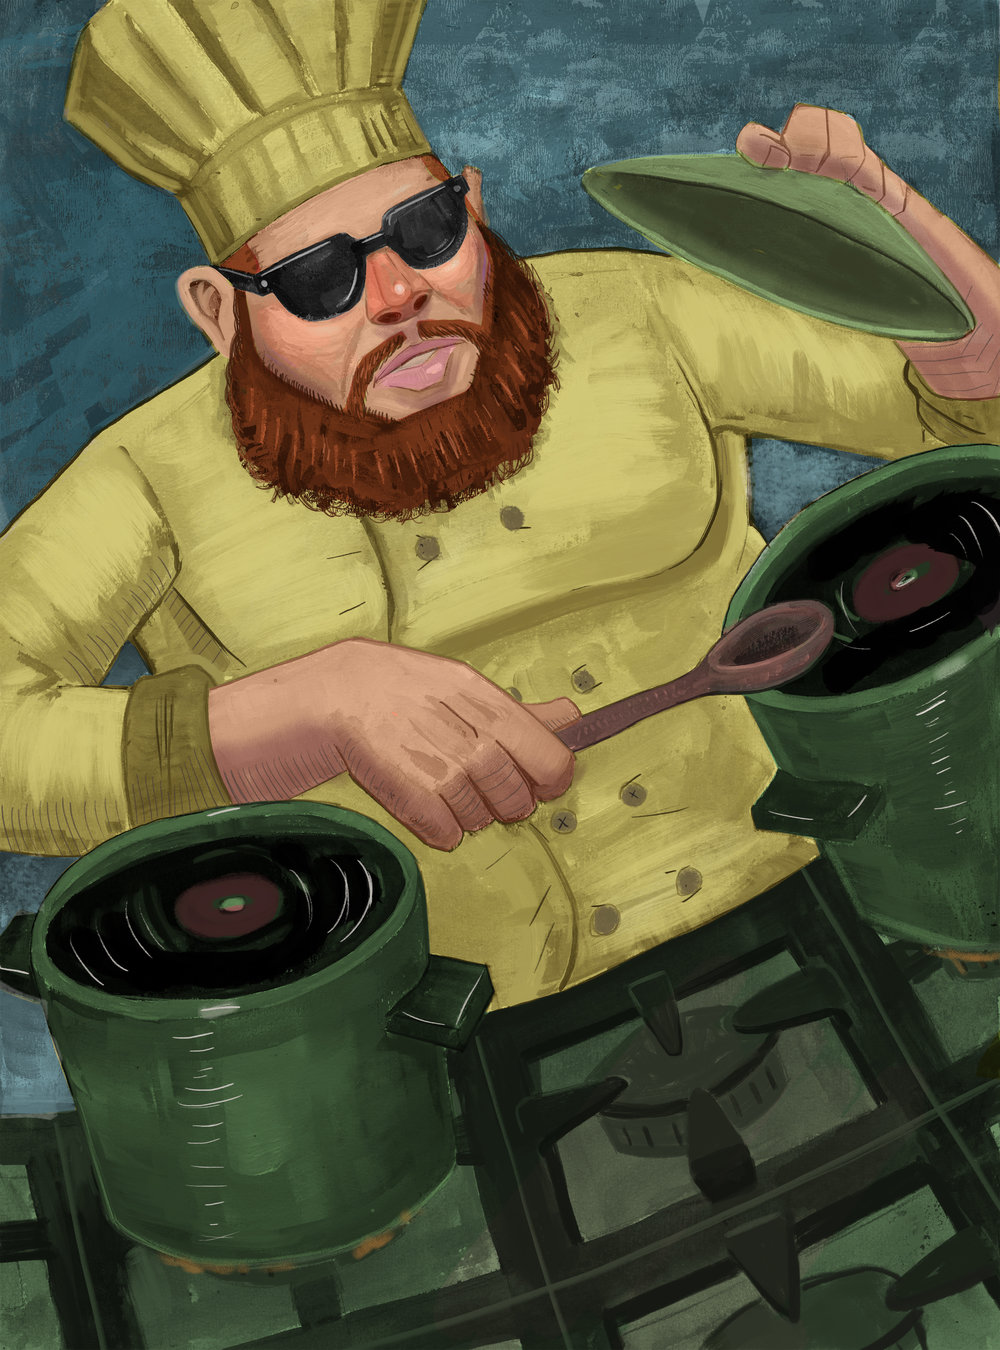 """Bronson the Cook/Gouache, Color Pencil and Digital / 8"""" x 10""""    2 of 2 in a small series of illustrations called Past Passions, about rappers and the things they studied before they became rappers. This is about Action Bronson and the period of his life when he worked as a cheif"""